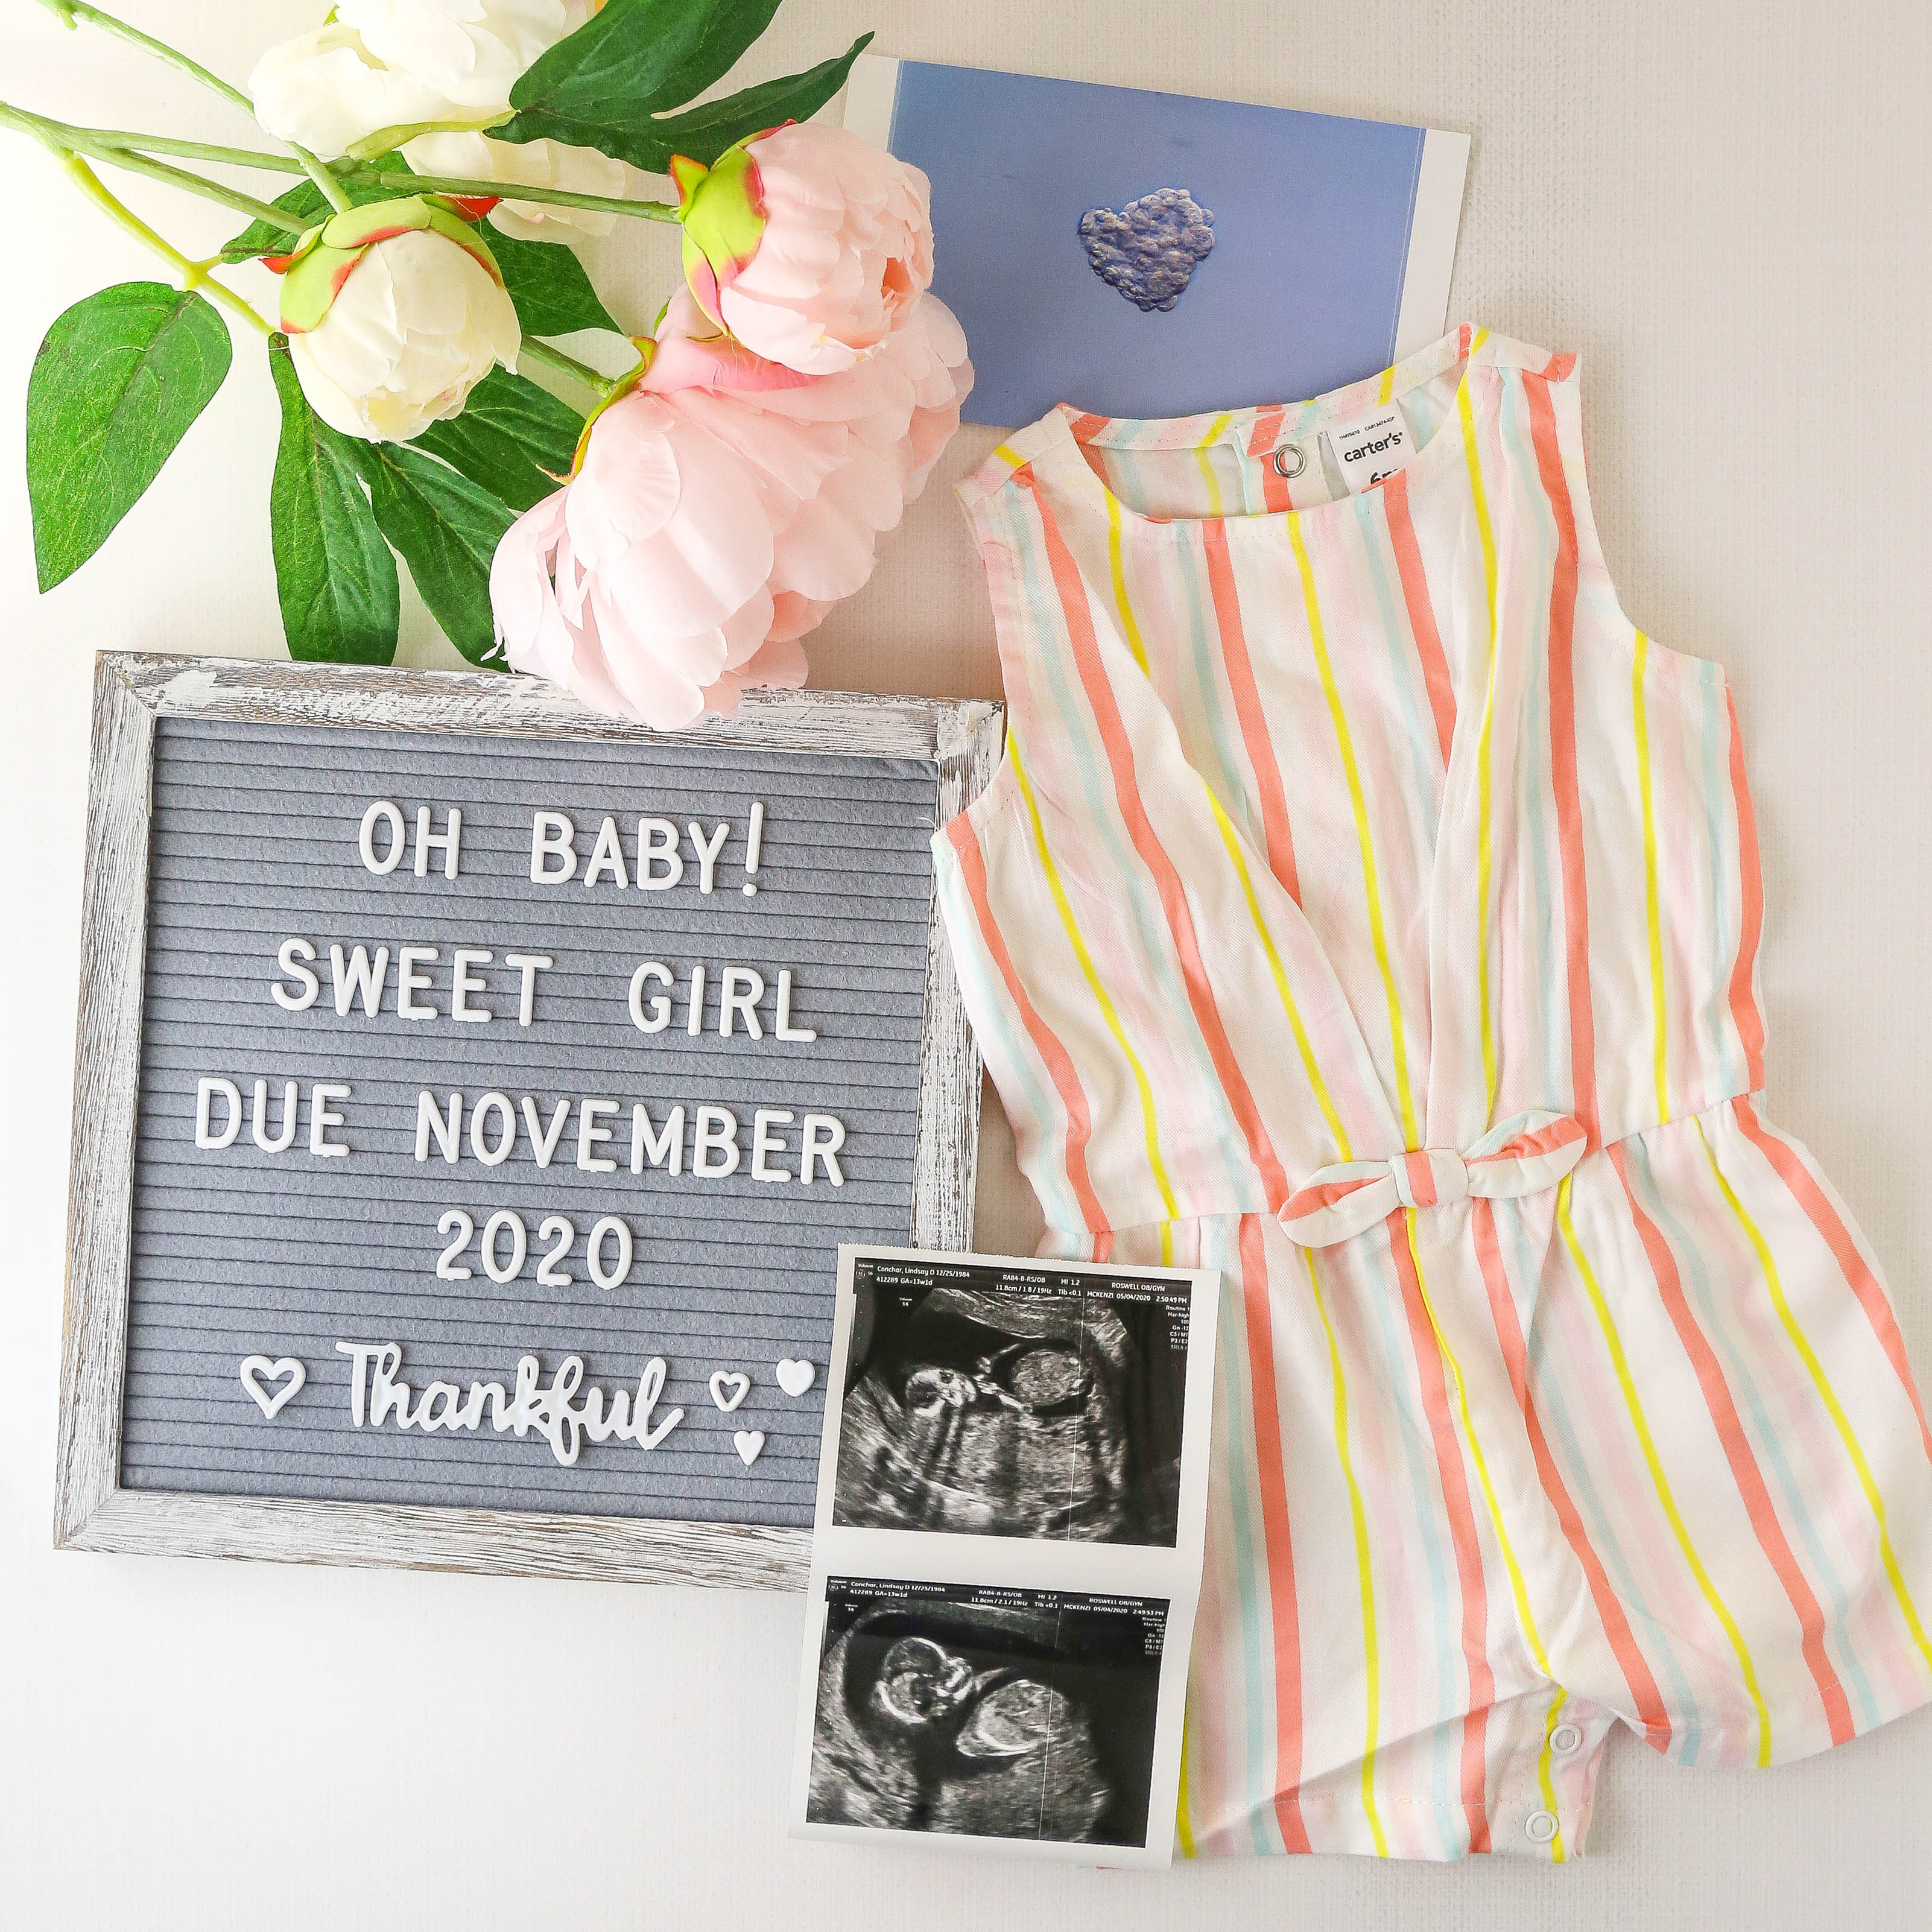 baby annoucement image with flowers, sonogram, baby outfit and letterboard